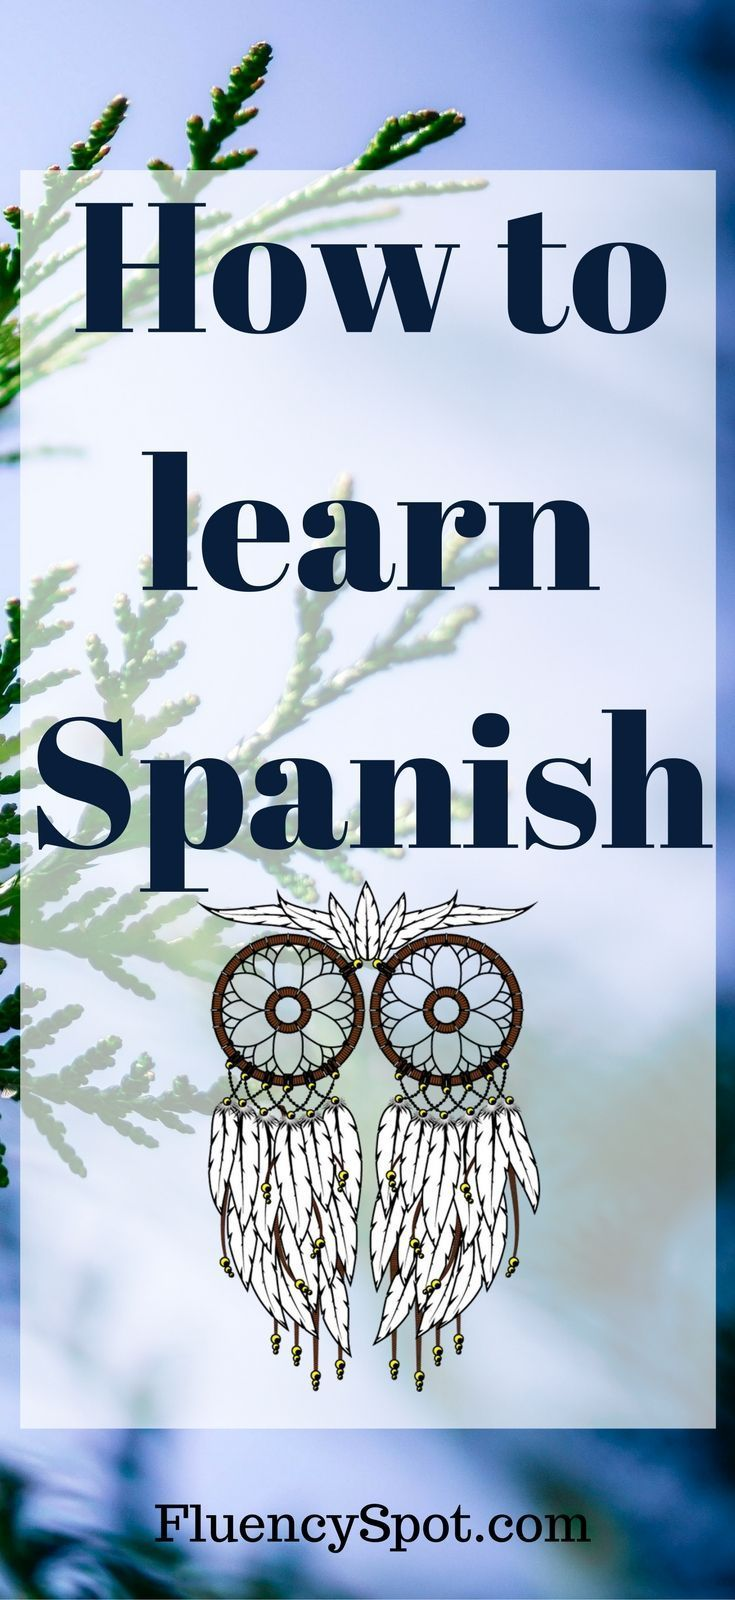 Communication on this topic: How to Study Spanish for Free, how-to-study-spanish-for-free/